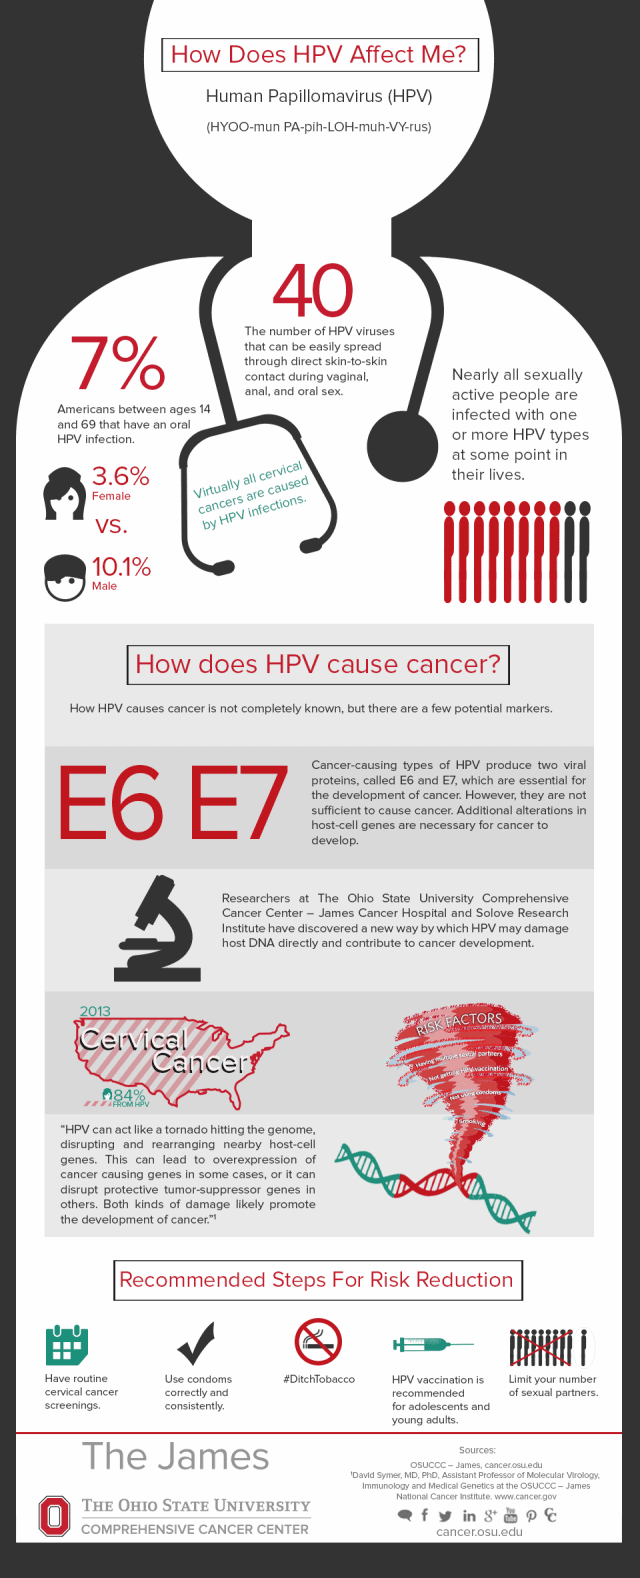 SM_OSUCCC-HPV-Infographic-March-10th-2014-640x1578